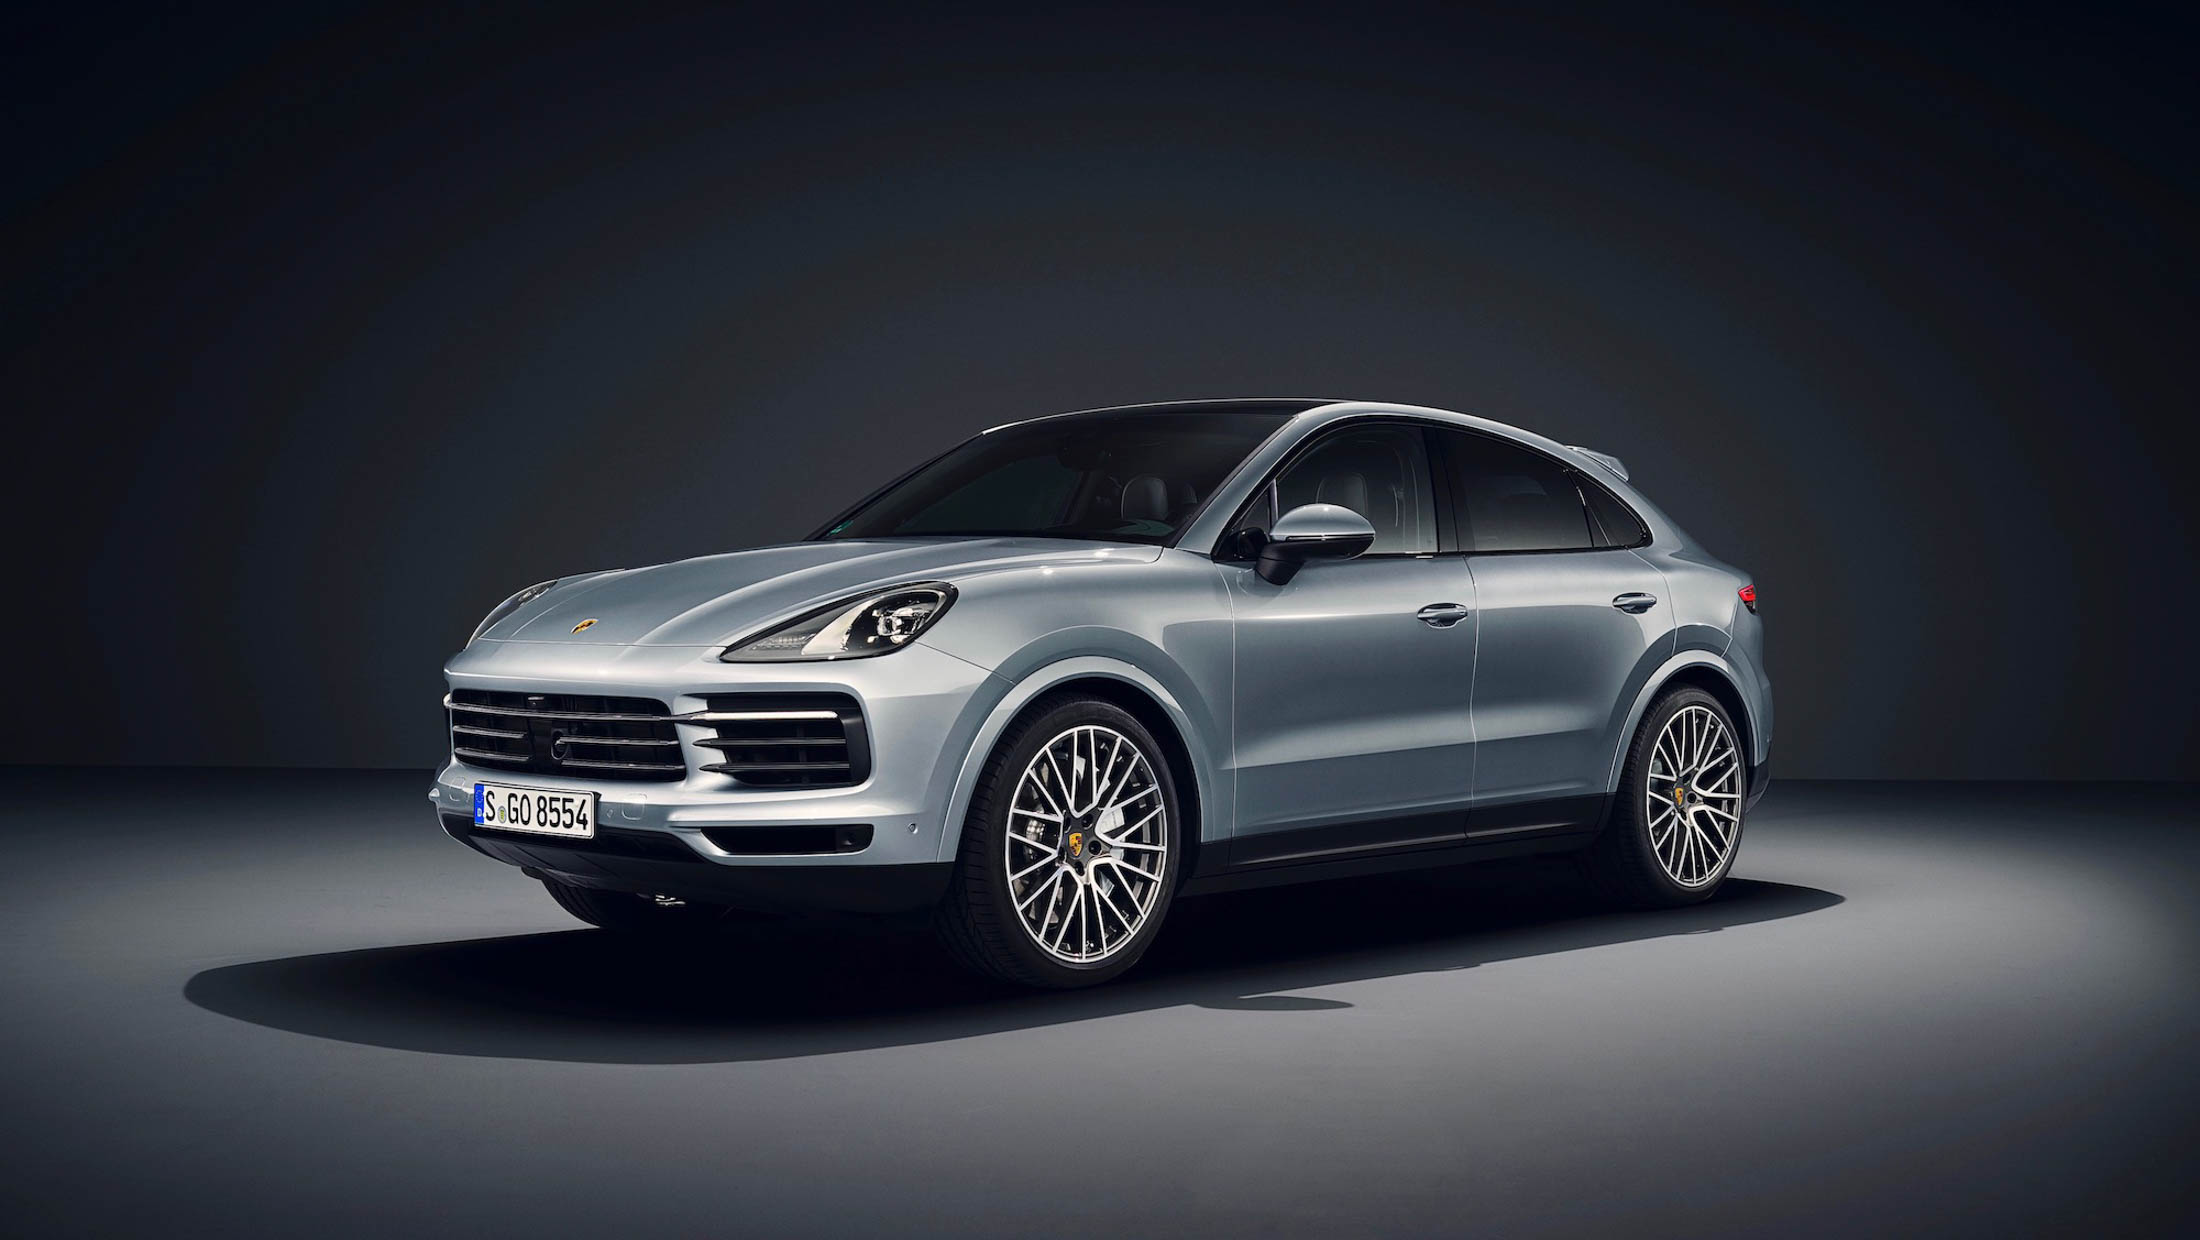 2019 Porsche Cayenne S Review A Good Suv Without Soul Bloomberg